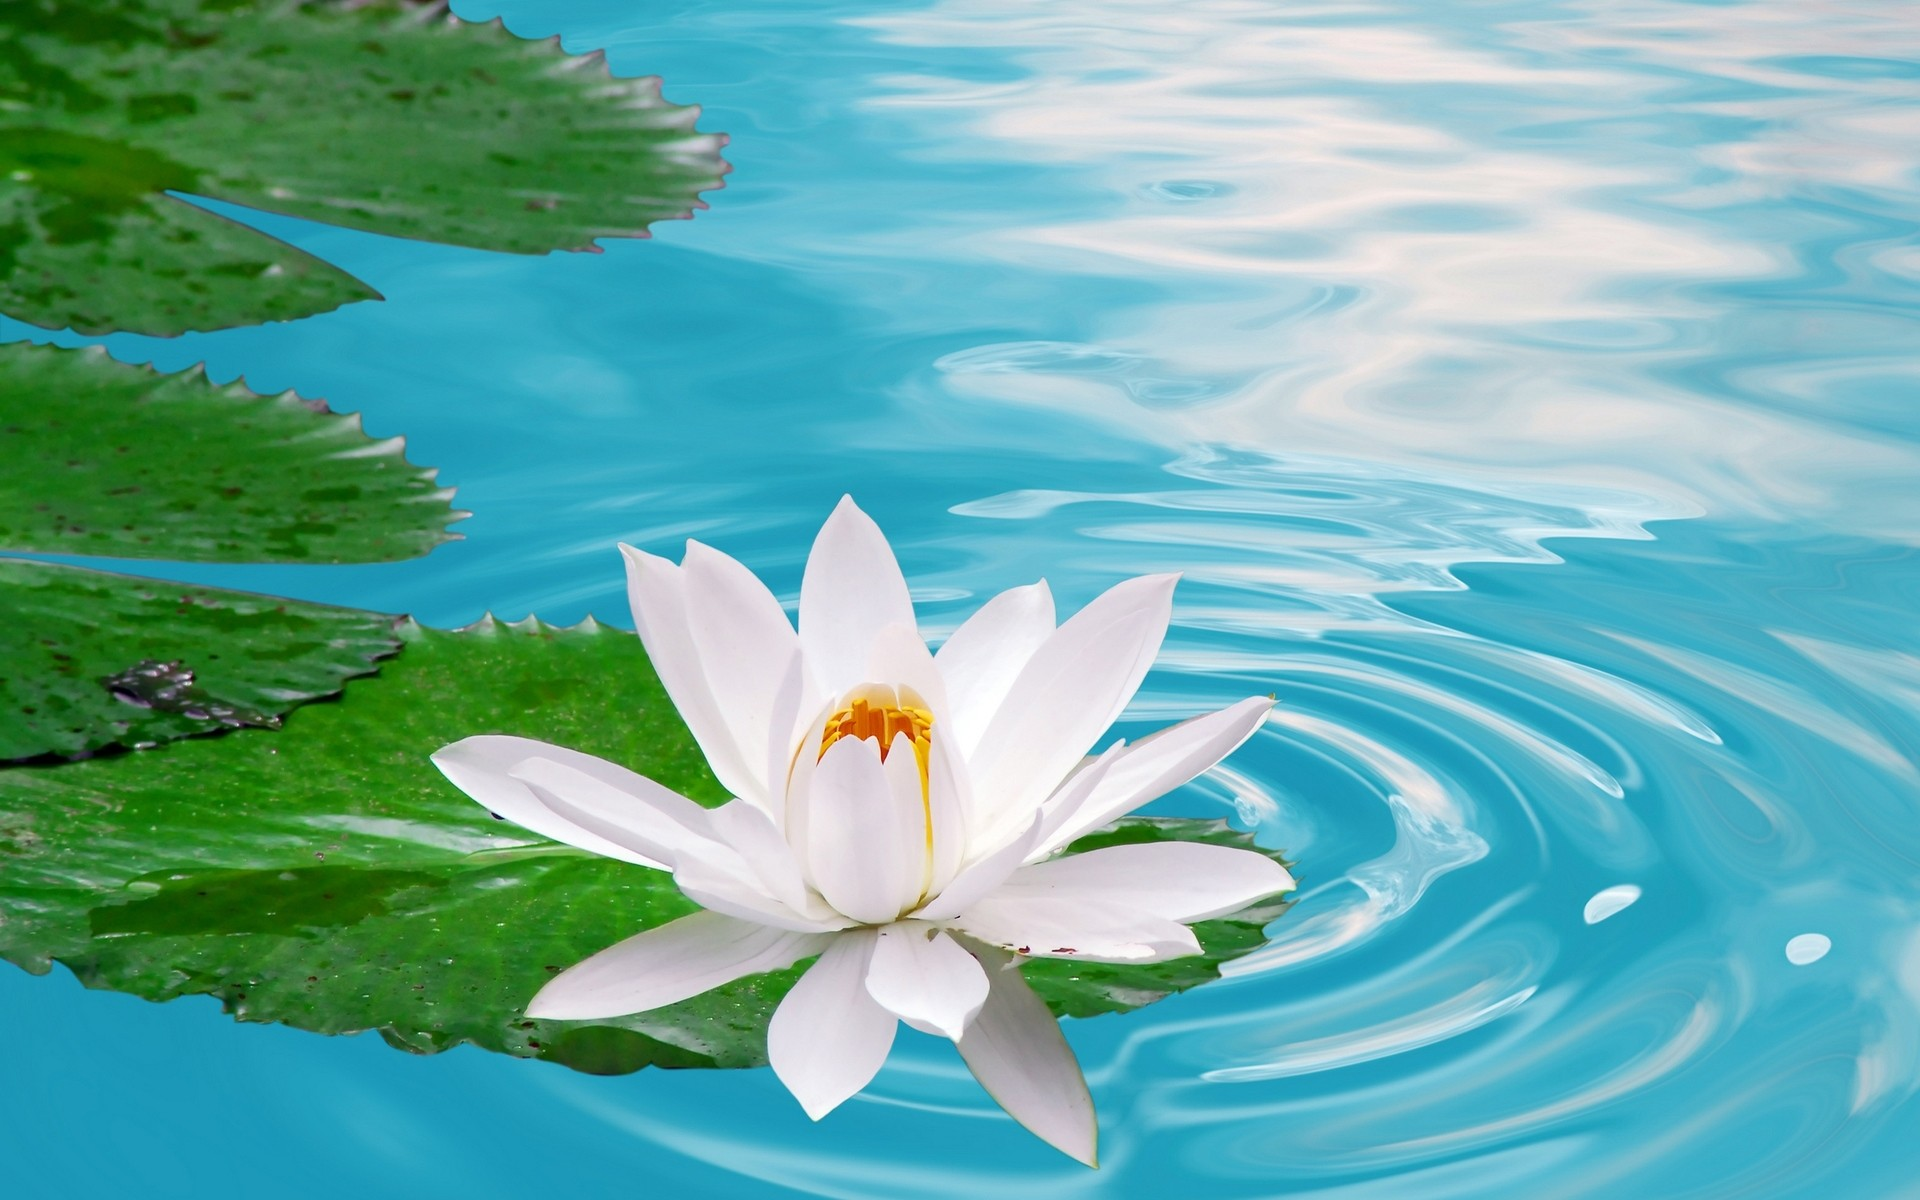 Lotus Flower Wallpaper ① Wallpapertag